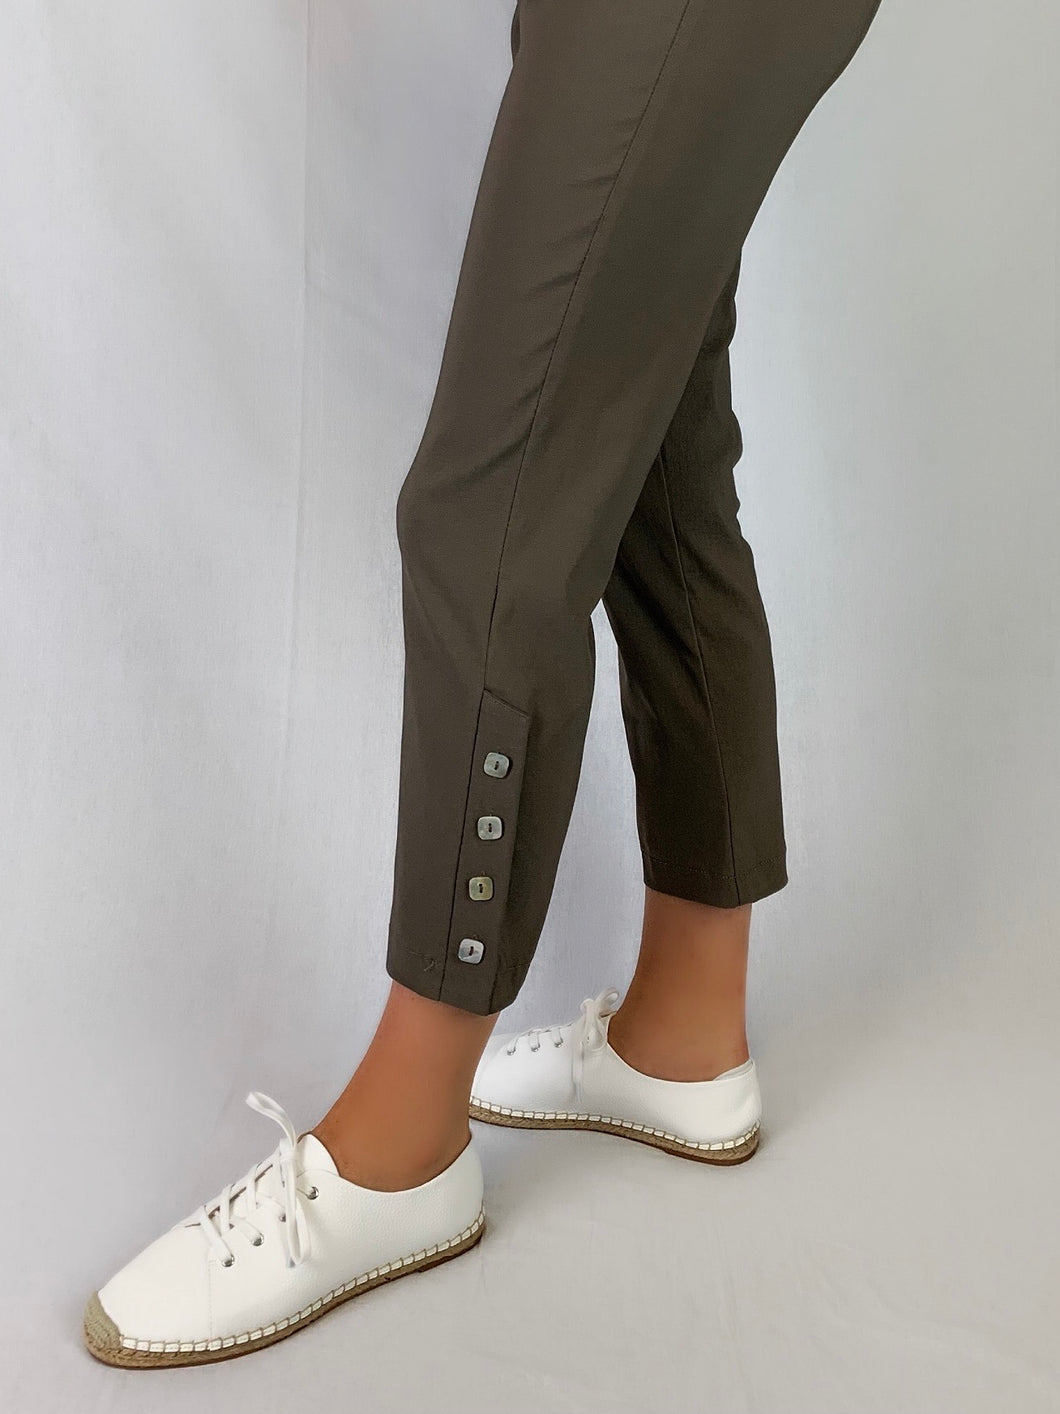 Our Corsican 7/8 Marina Pant made from Bengaline and Lycra are one of our most popular styles of pant. Redesigned with a slightly tapered leg, they feature four shimmering mother of pearl square buttons on the side and an elastic waist allowing you the freedom to move. Available in six classic colours they're fully washable and best of all